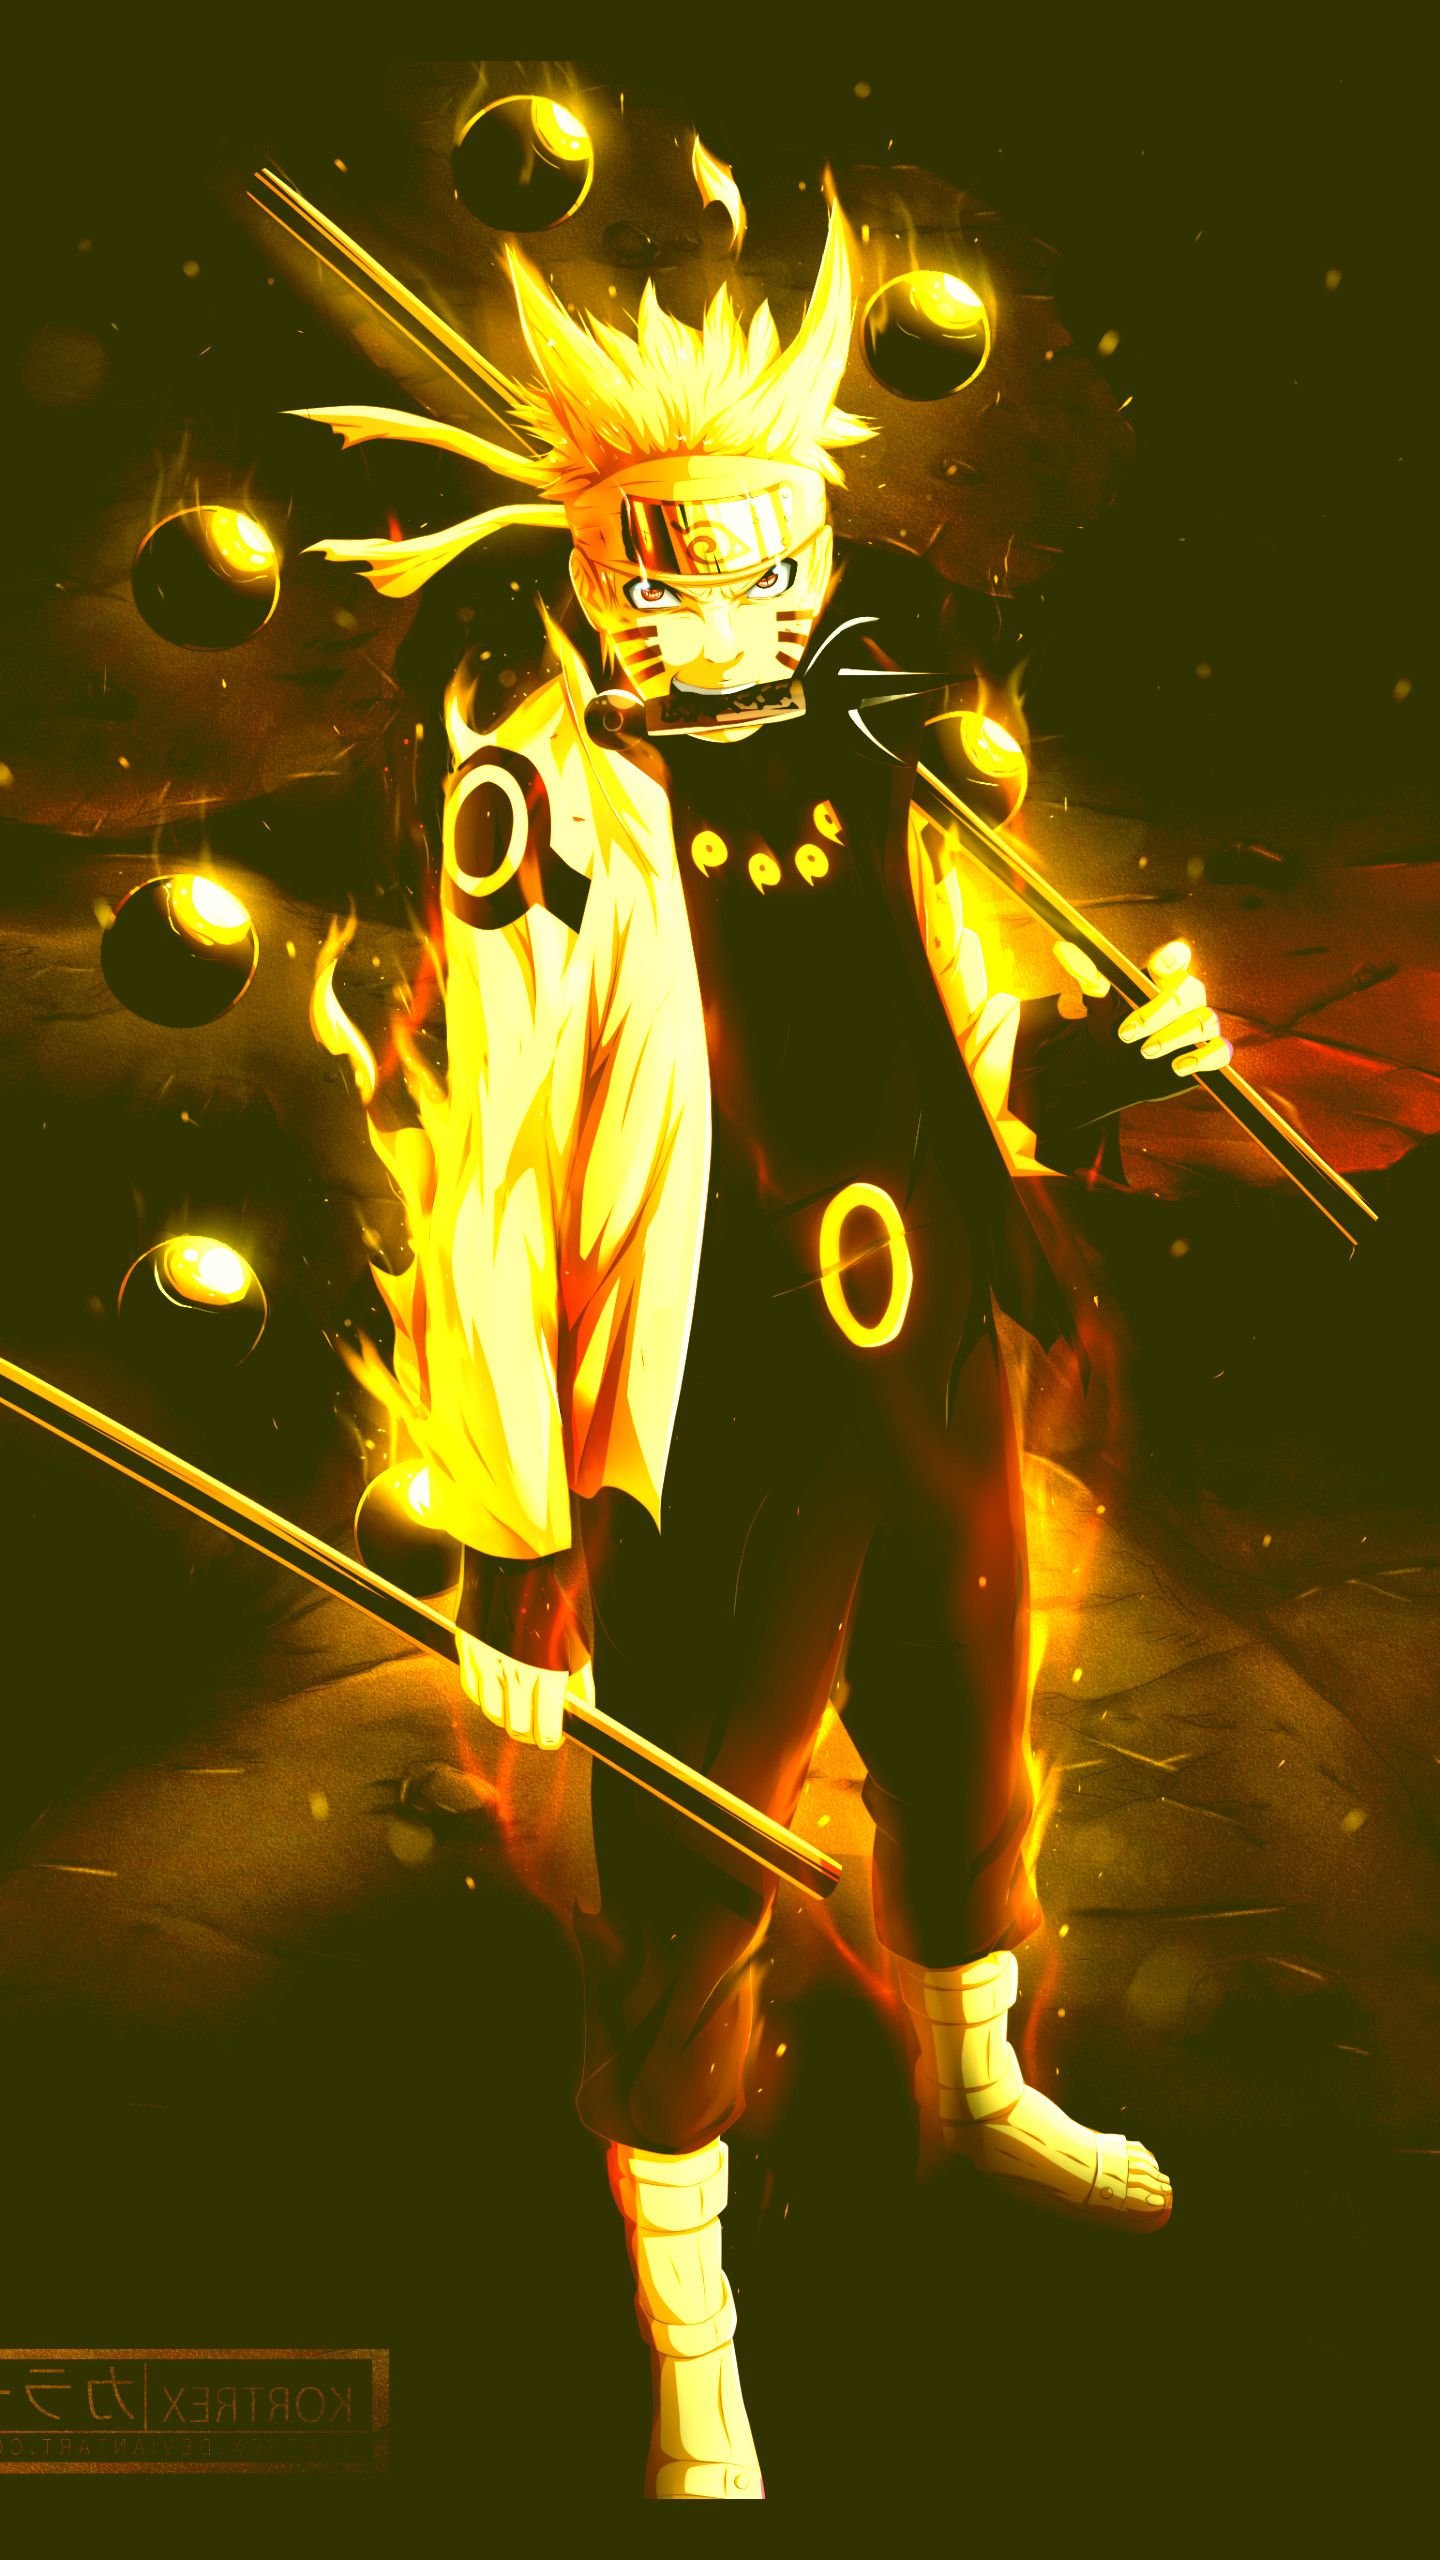 Unduh 610 Wallpaper Naruto Iphone 7 Terbaik